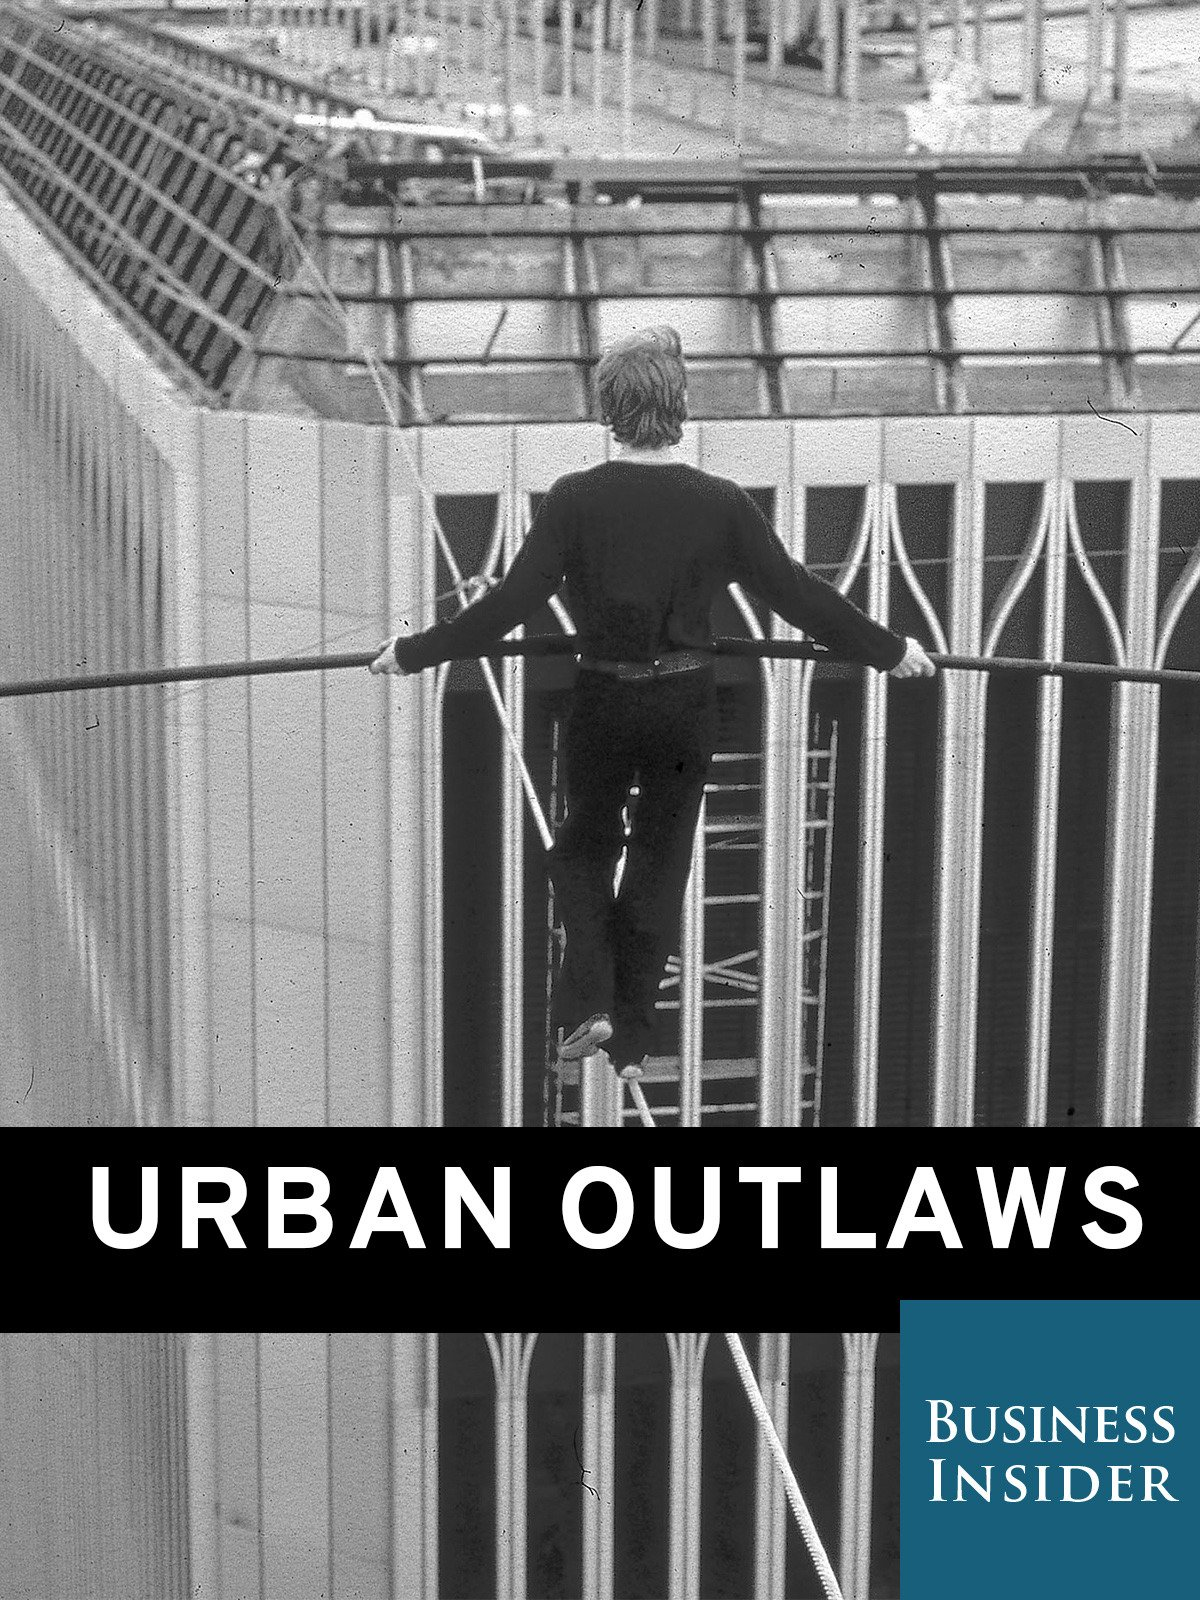 Urban Outlaws: Risking Their Lives for Art & Fame